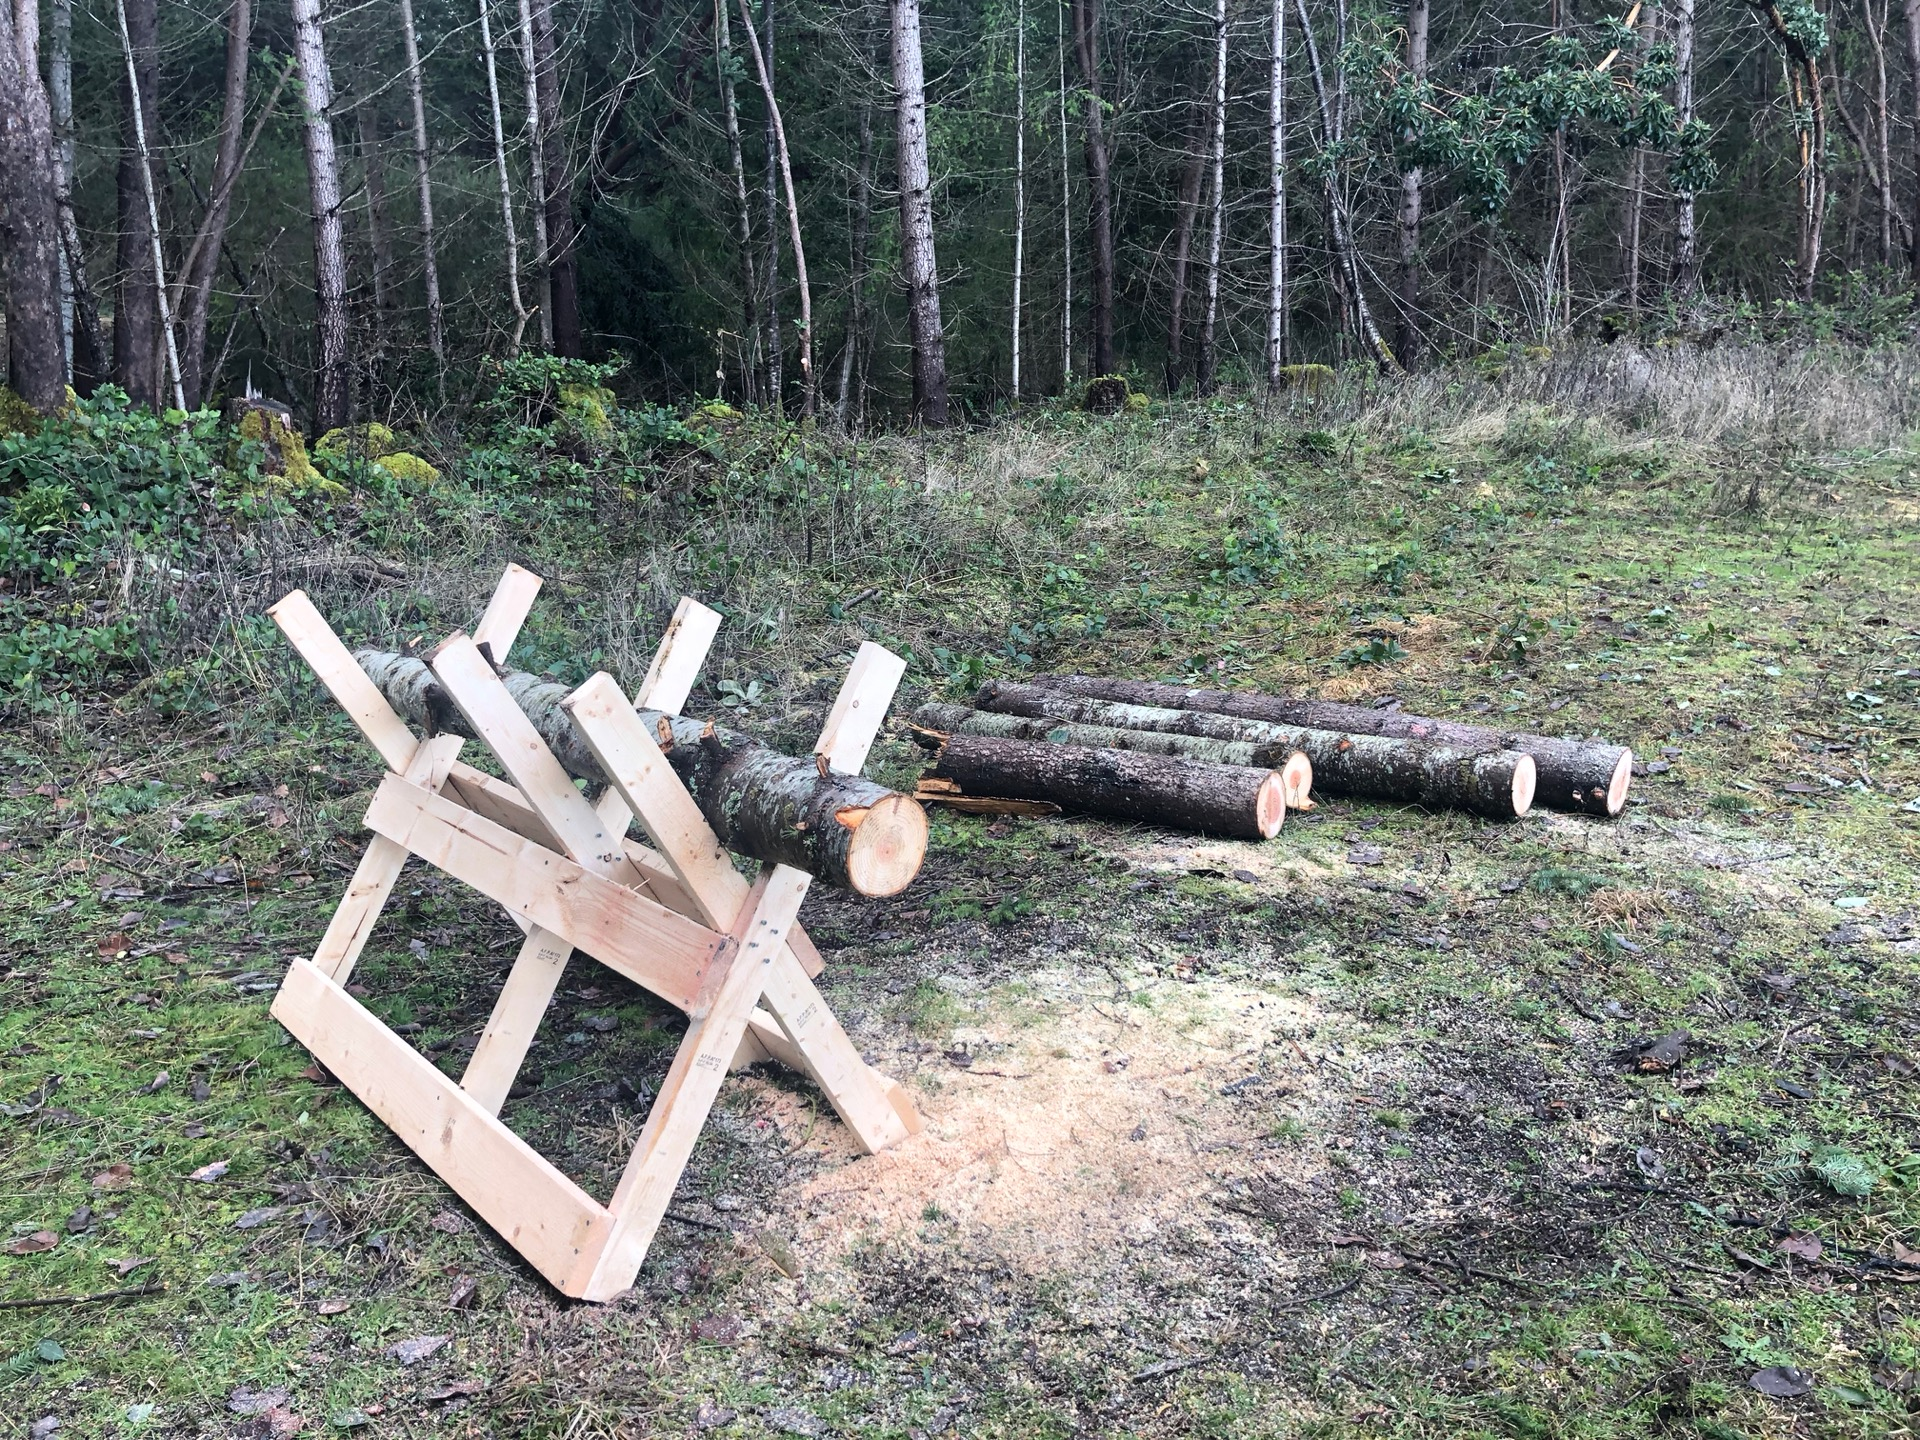 All that was left were a few big logs that needed to be cut up. They were a bit too heavy for me to handle solo.